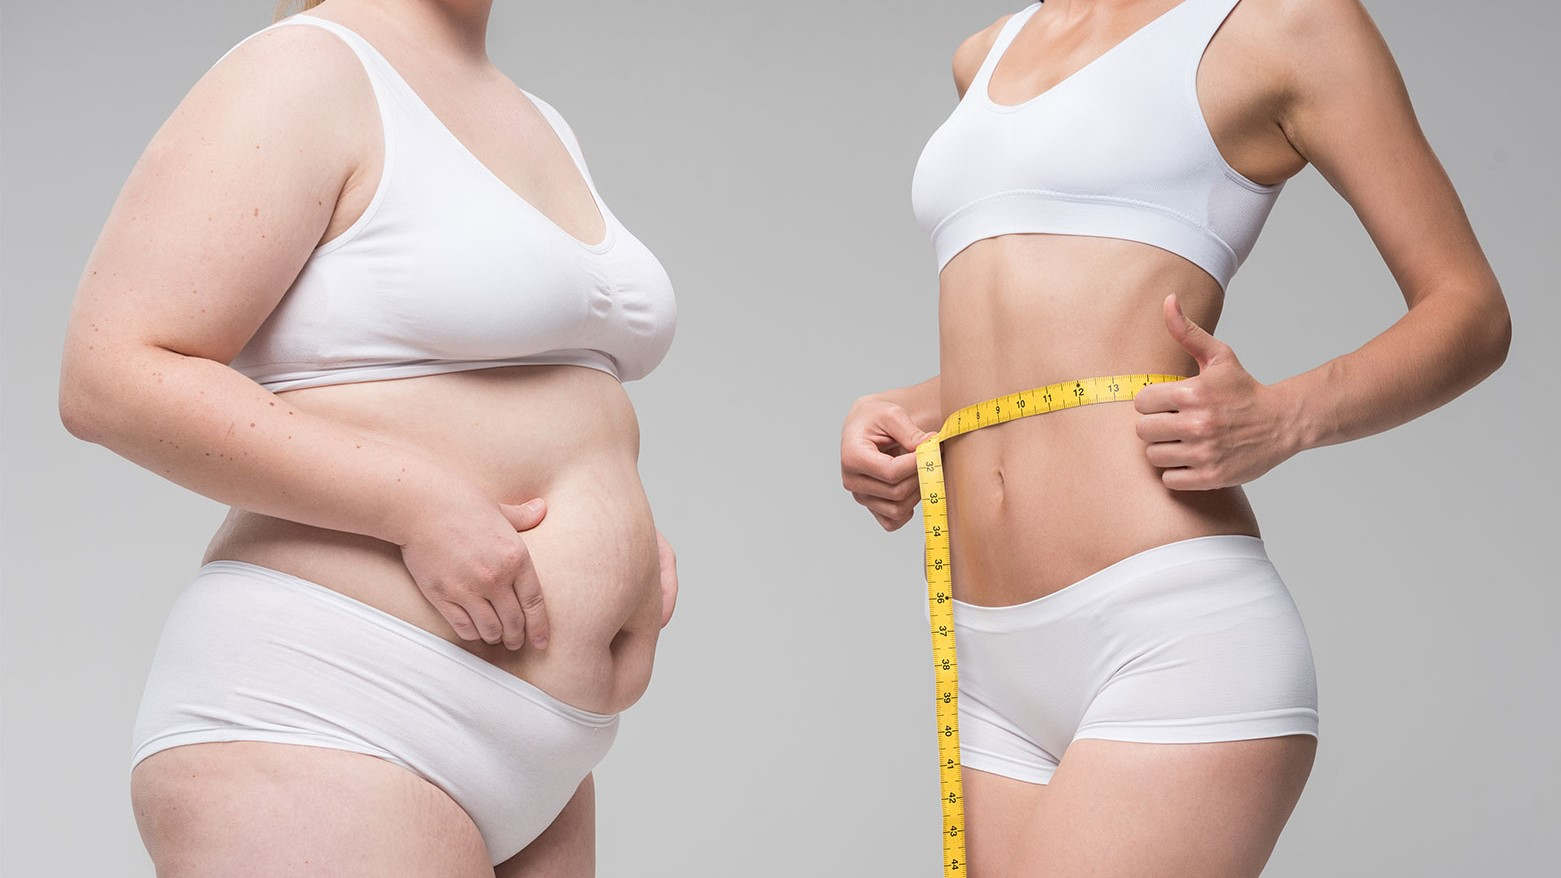 Body Parts & Conditions That Can Be Treated With Liposuction in Singapore